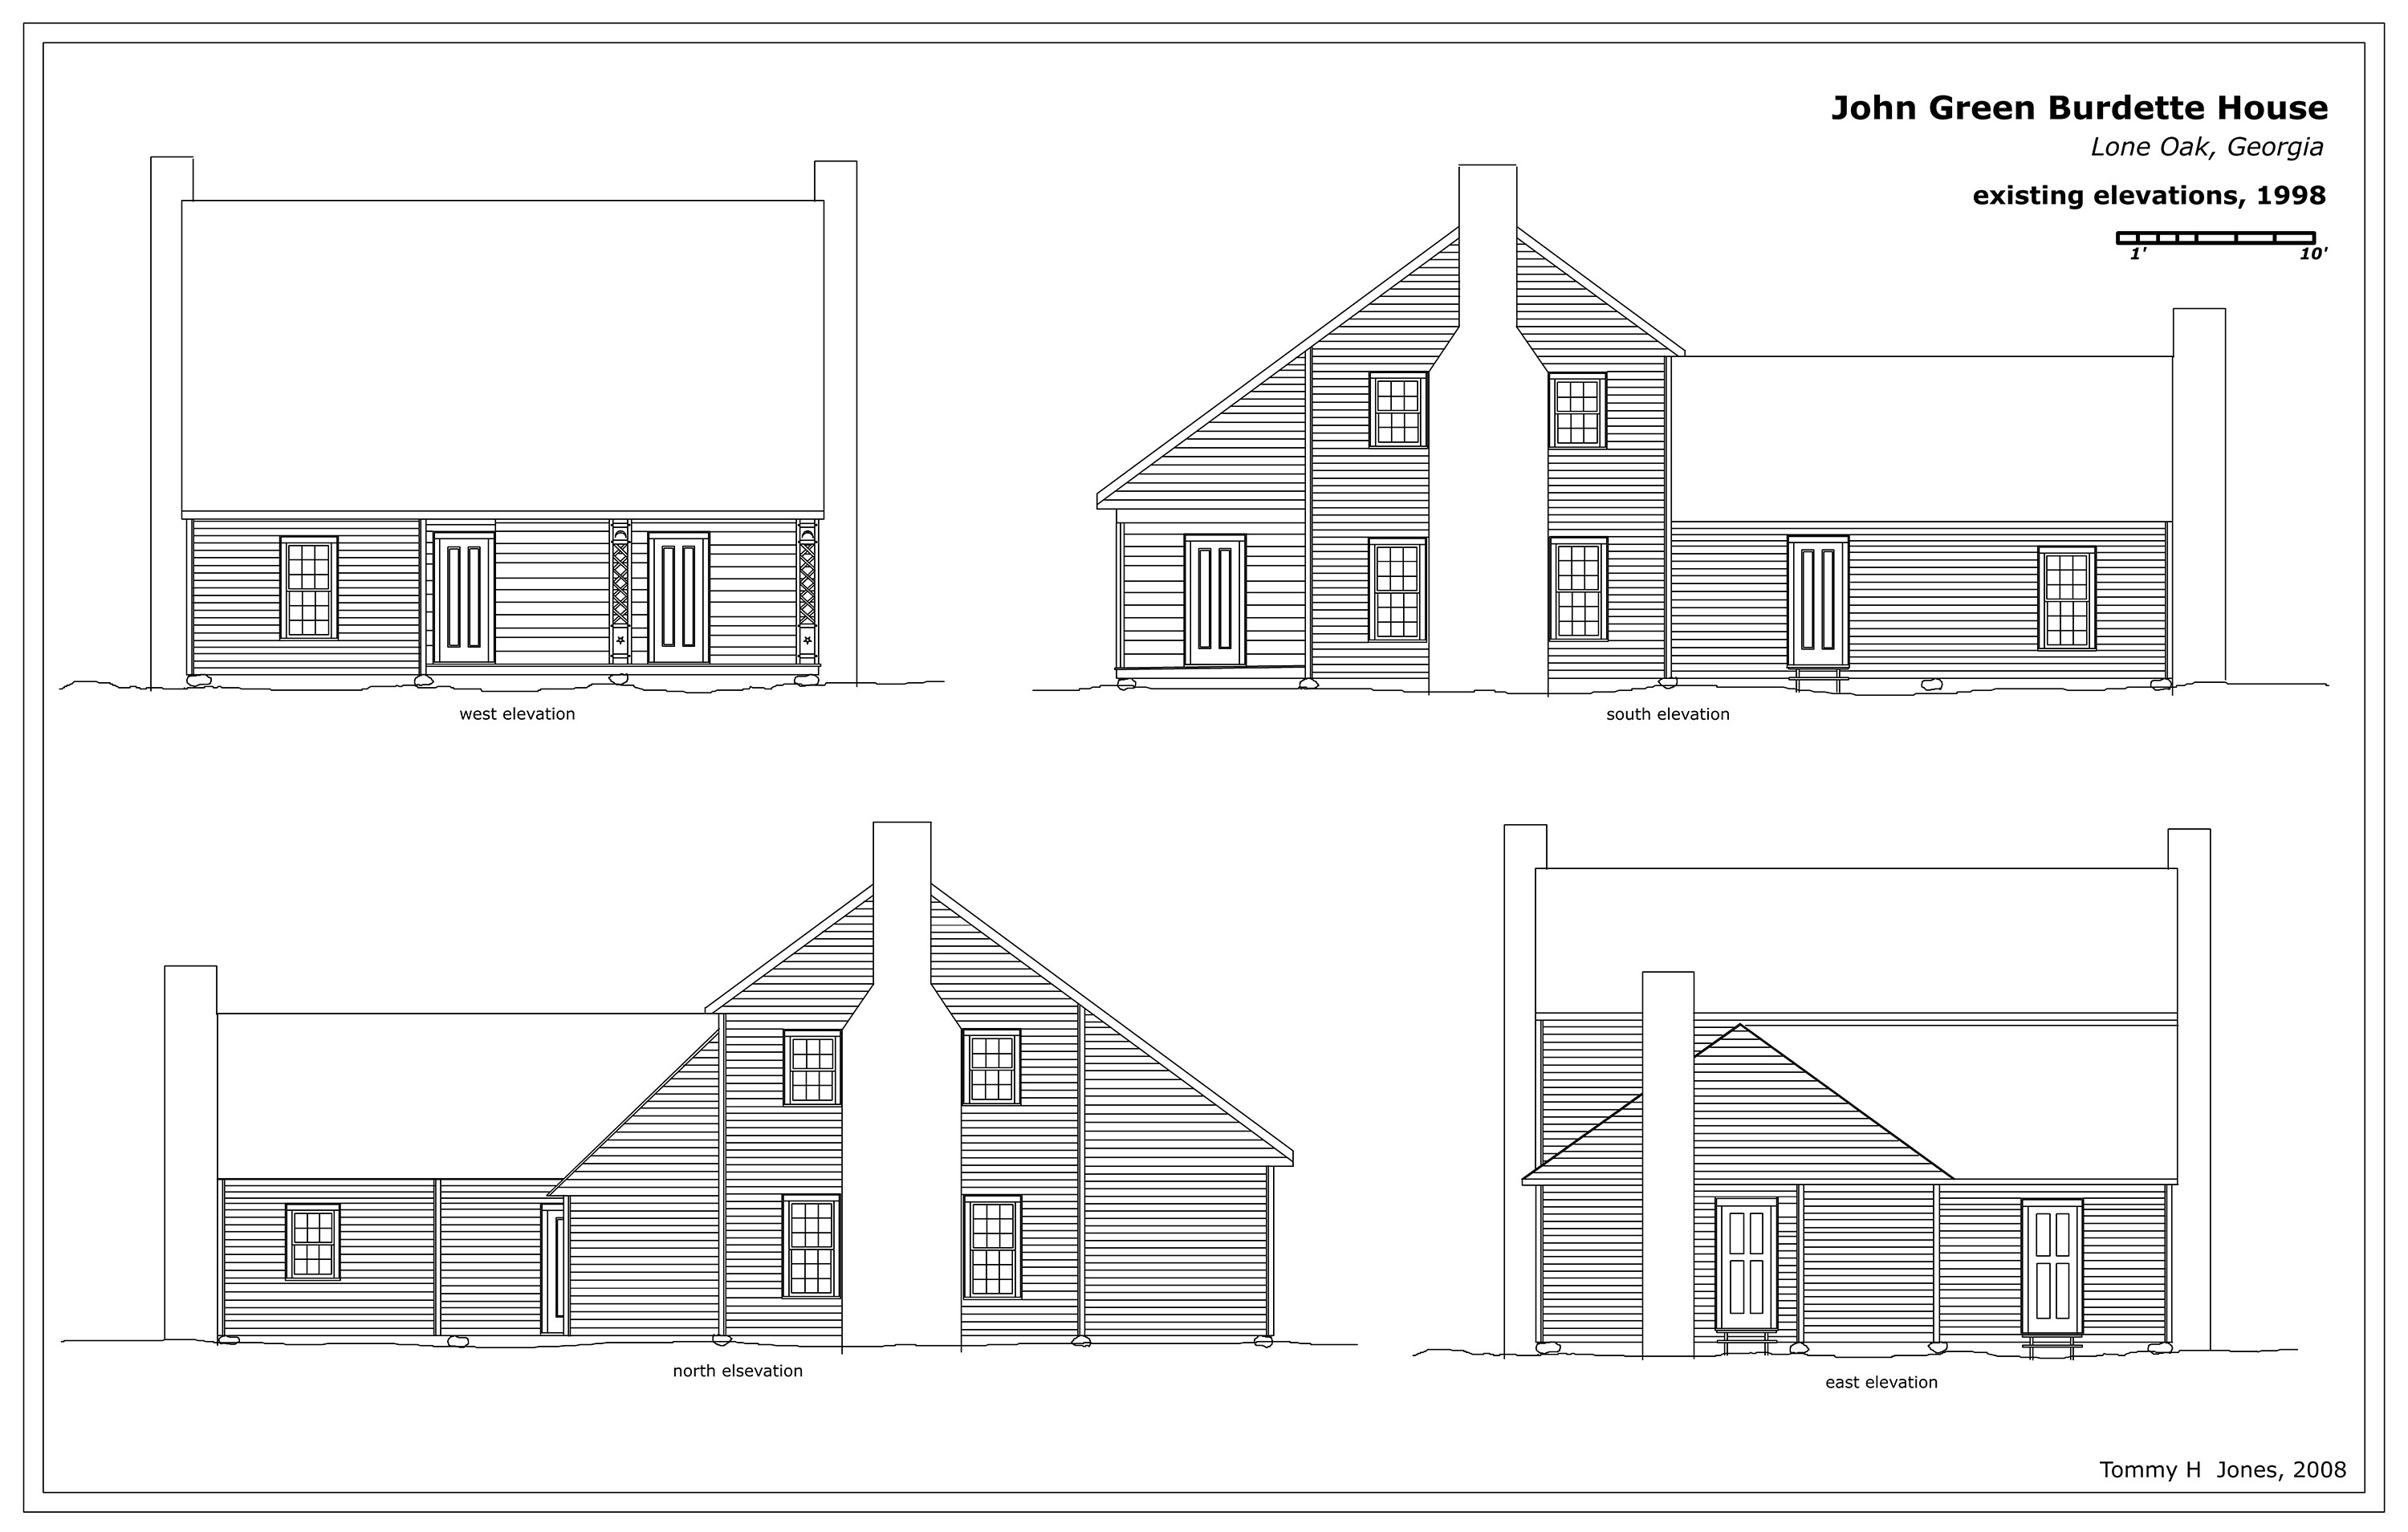 House plan elevation drawings House plan and elevation drawings